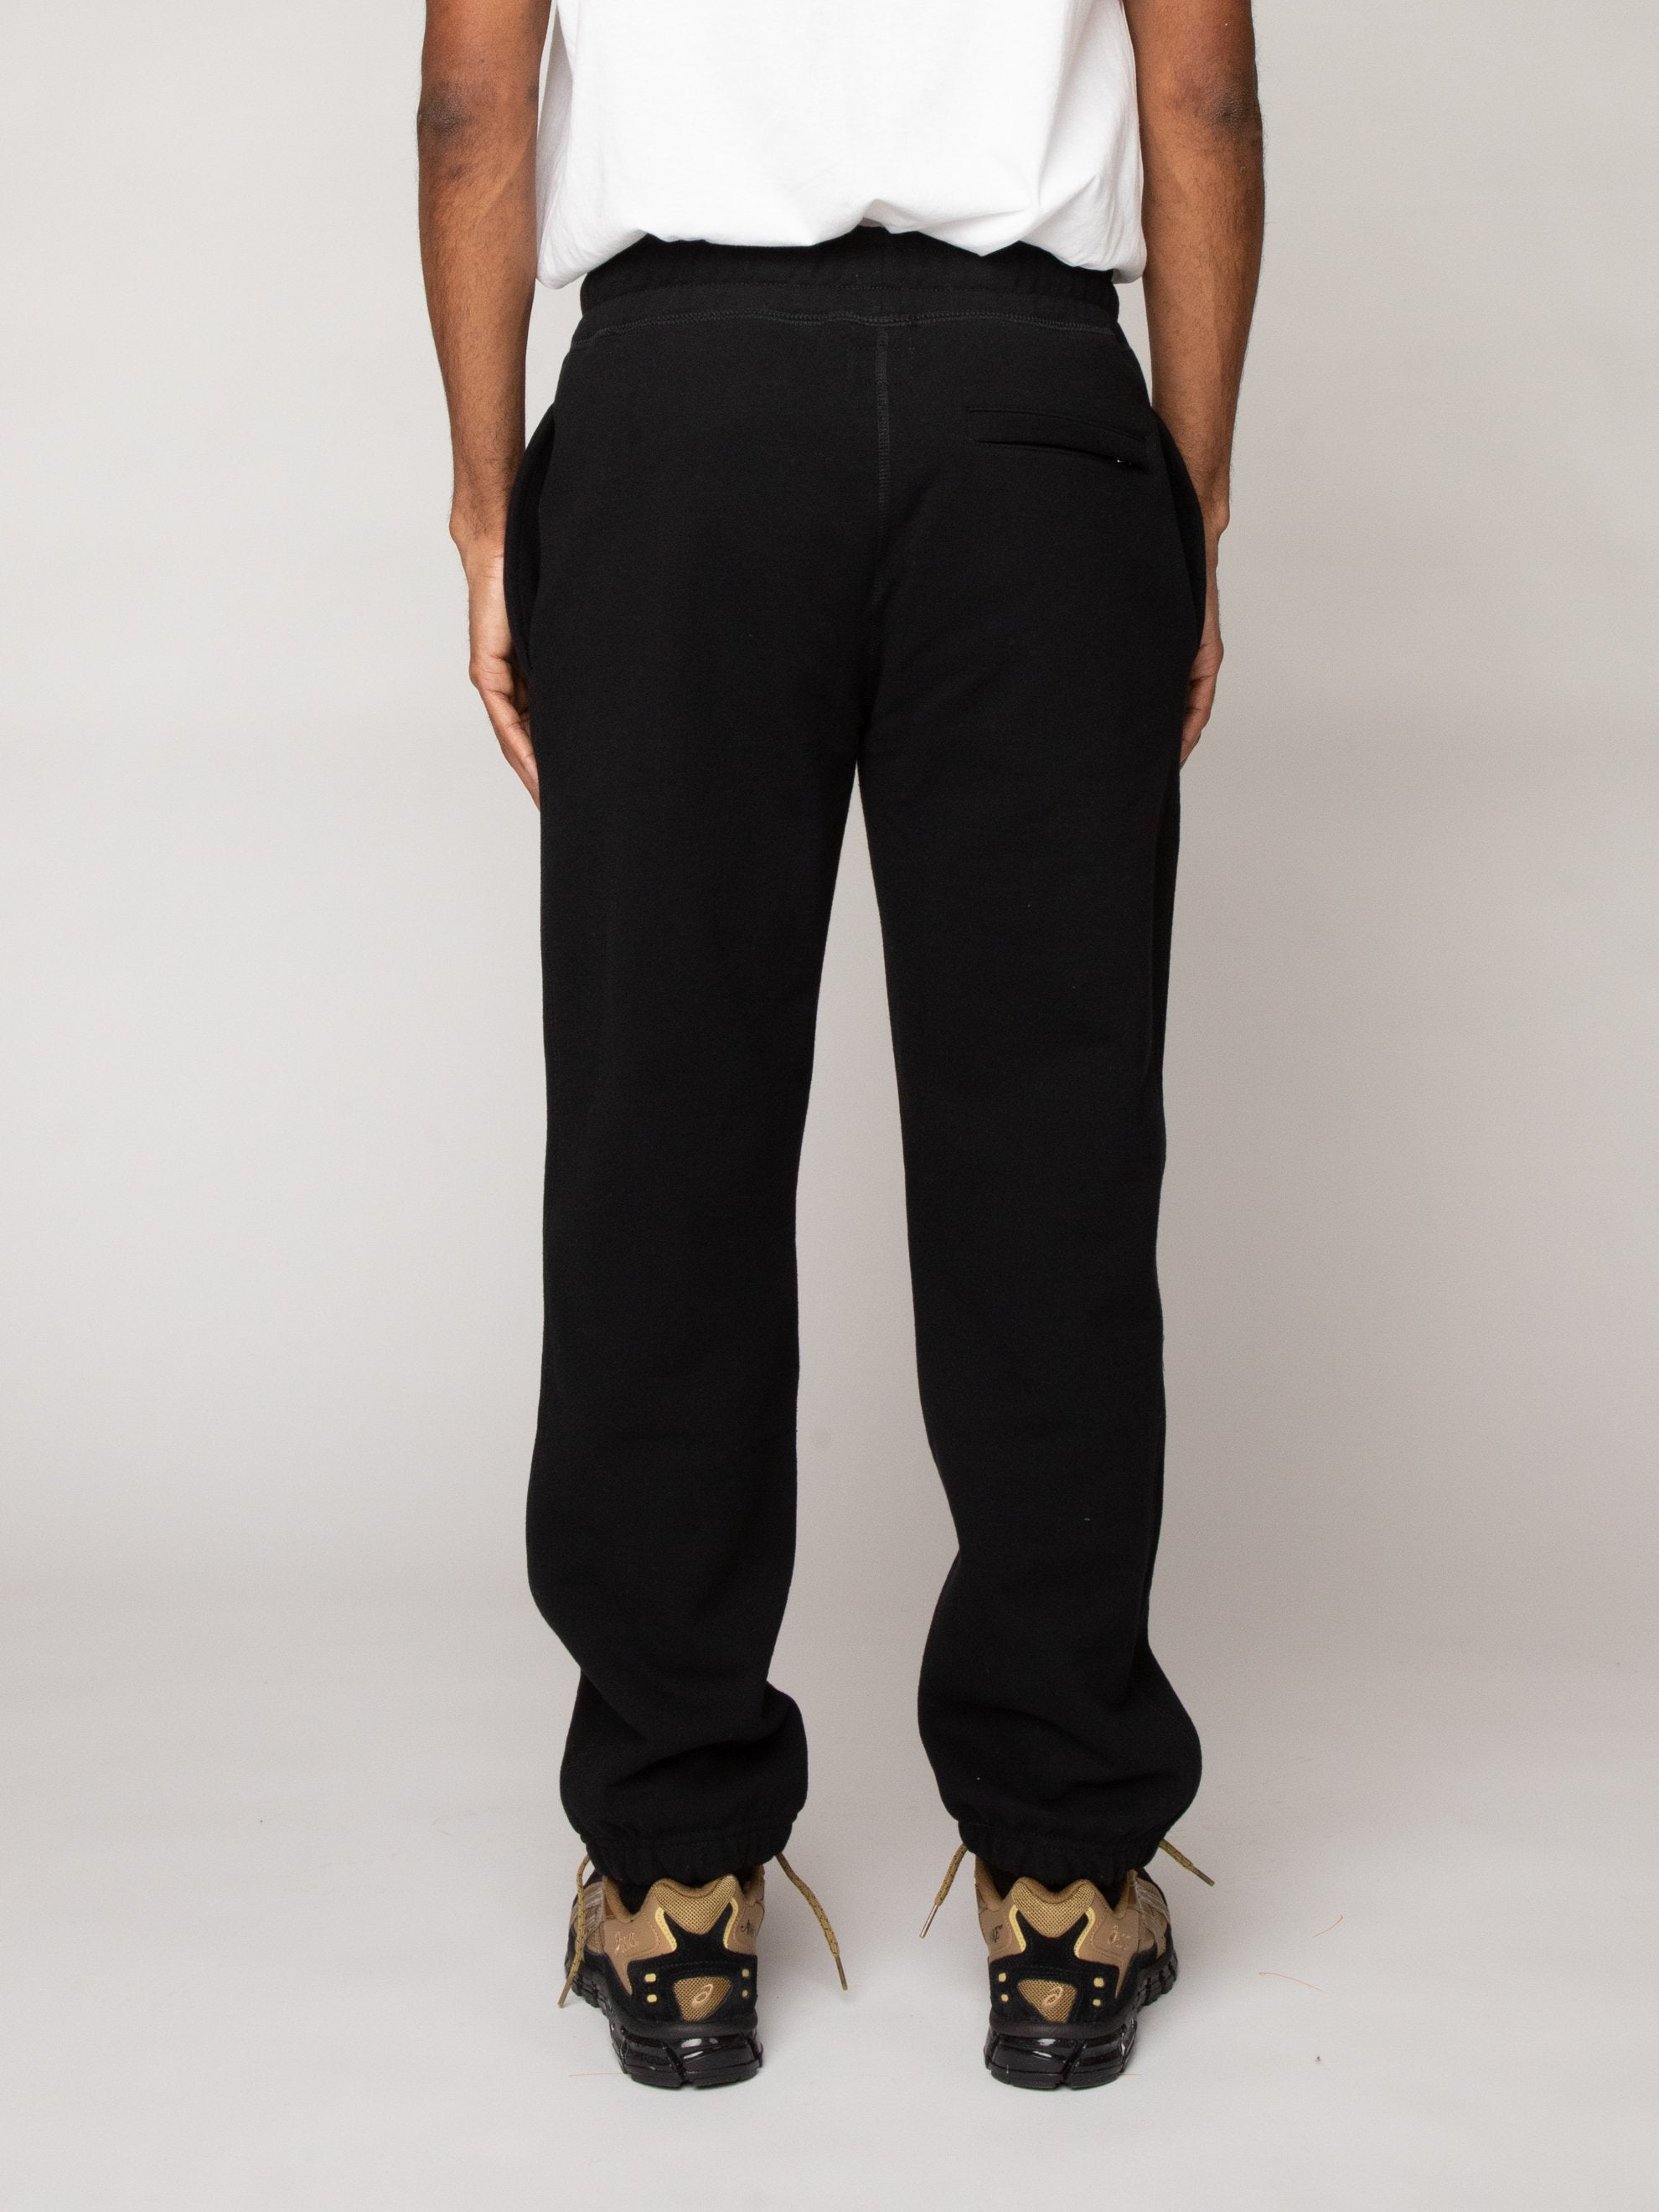 Black Cheetah Sweatpants 5